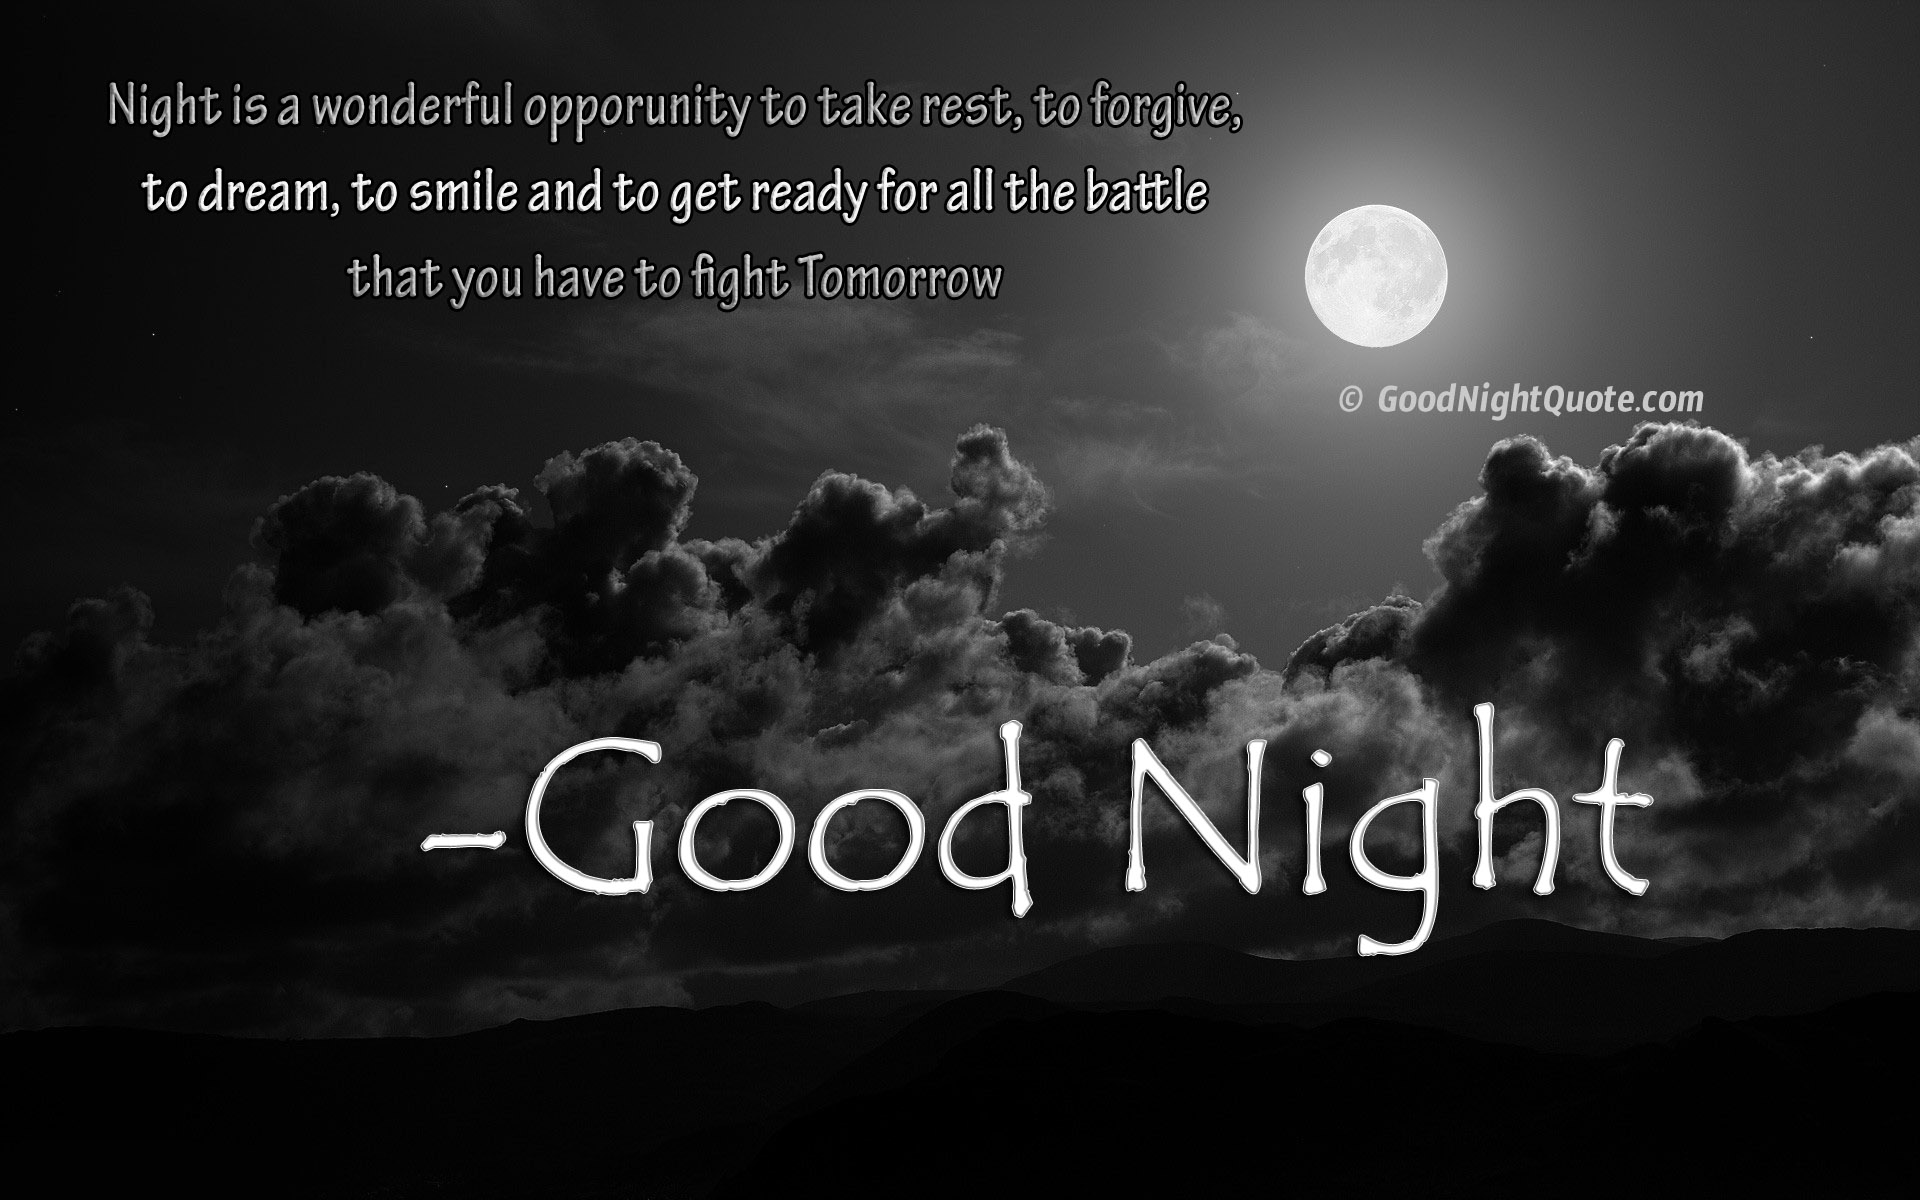 Quotes Good Night Good Night Inspirational Quotes  Don't Stress Do Your Best